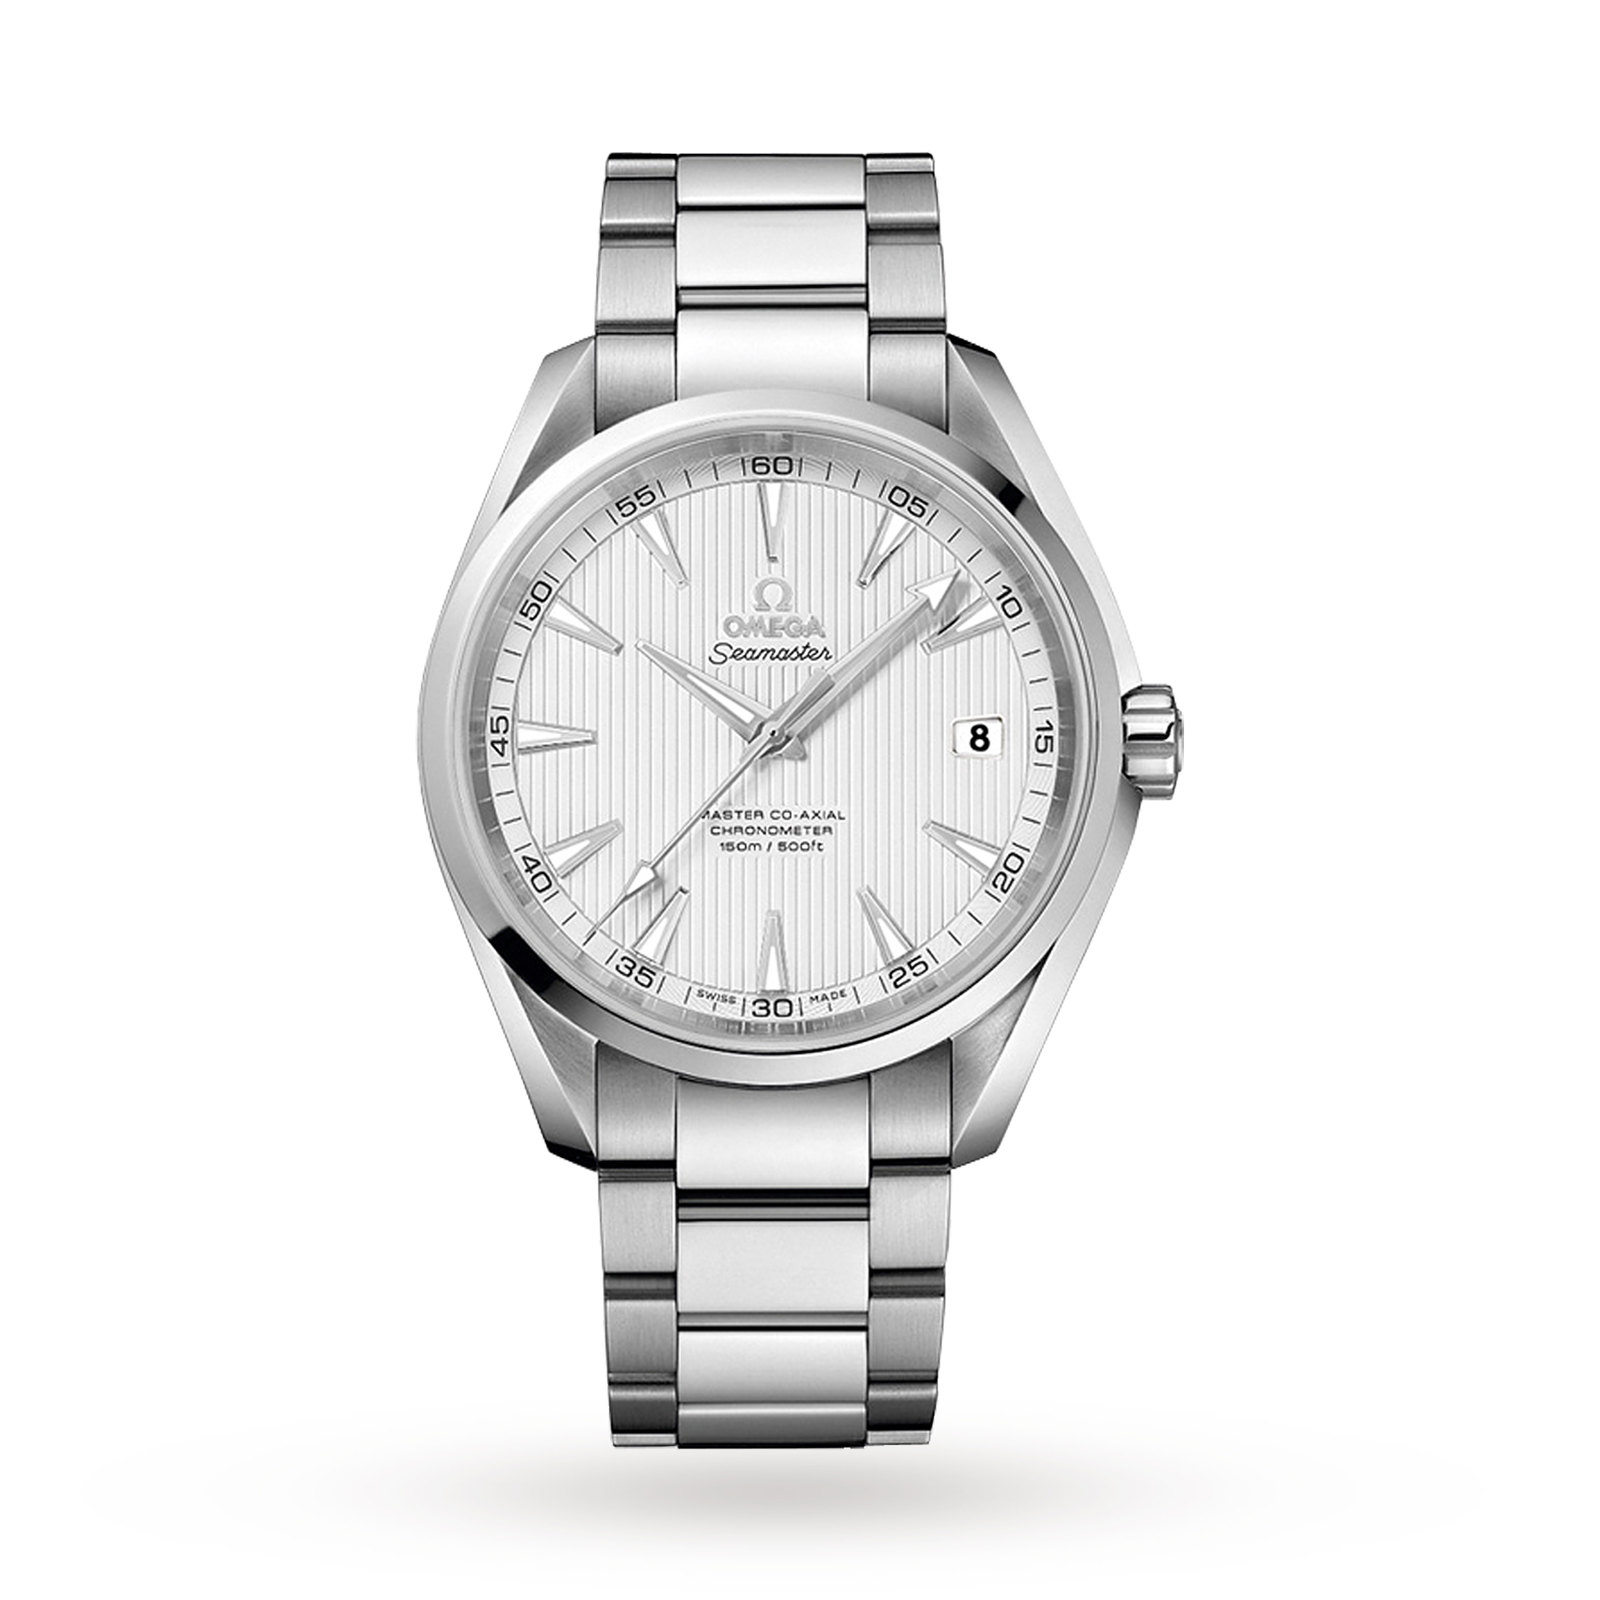 Omega Aquaterra Master Co-Axial Mens Watch